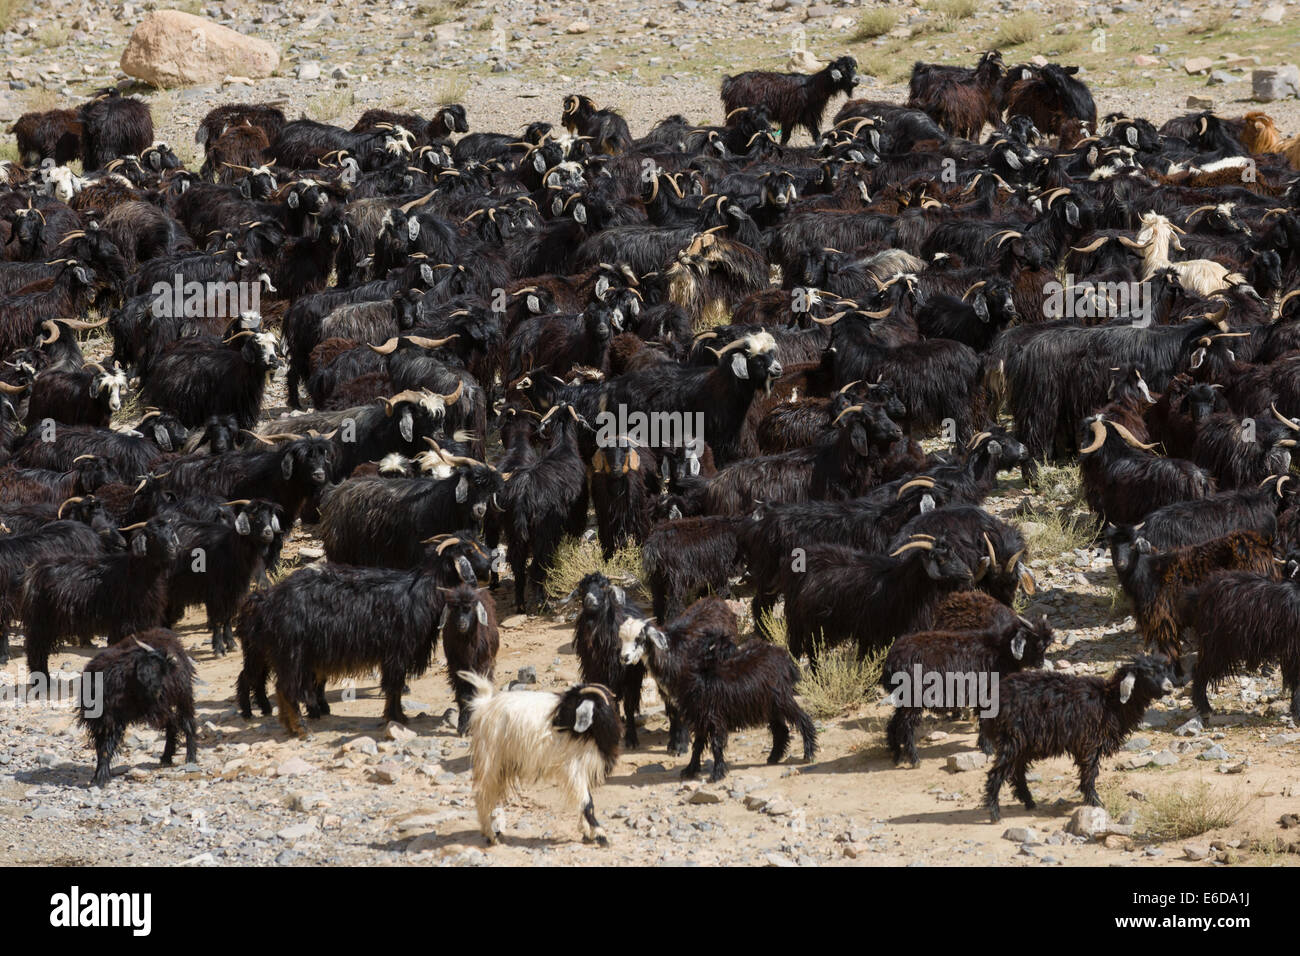 Large herd of goats, Todra Gorge, Morocco - Stock Image